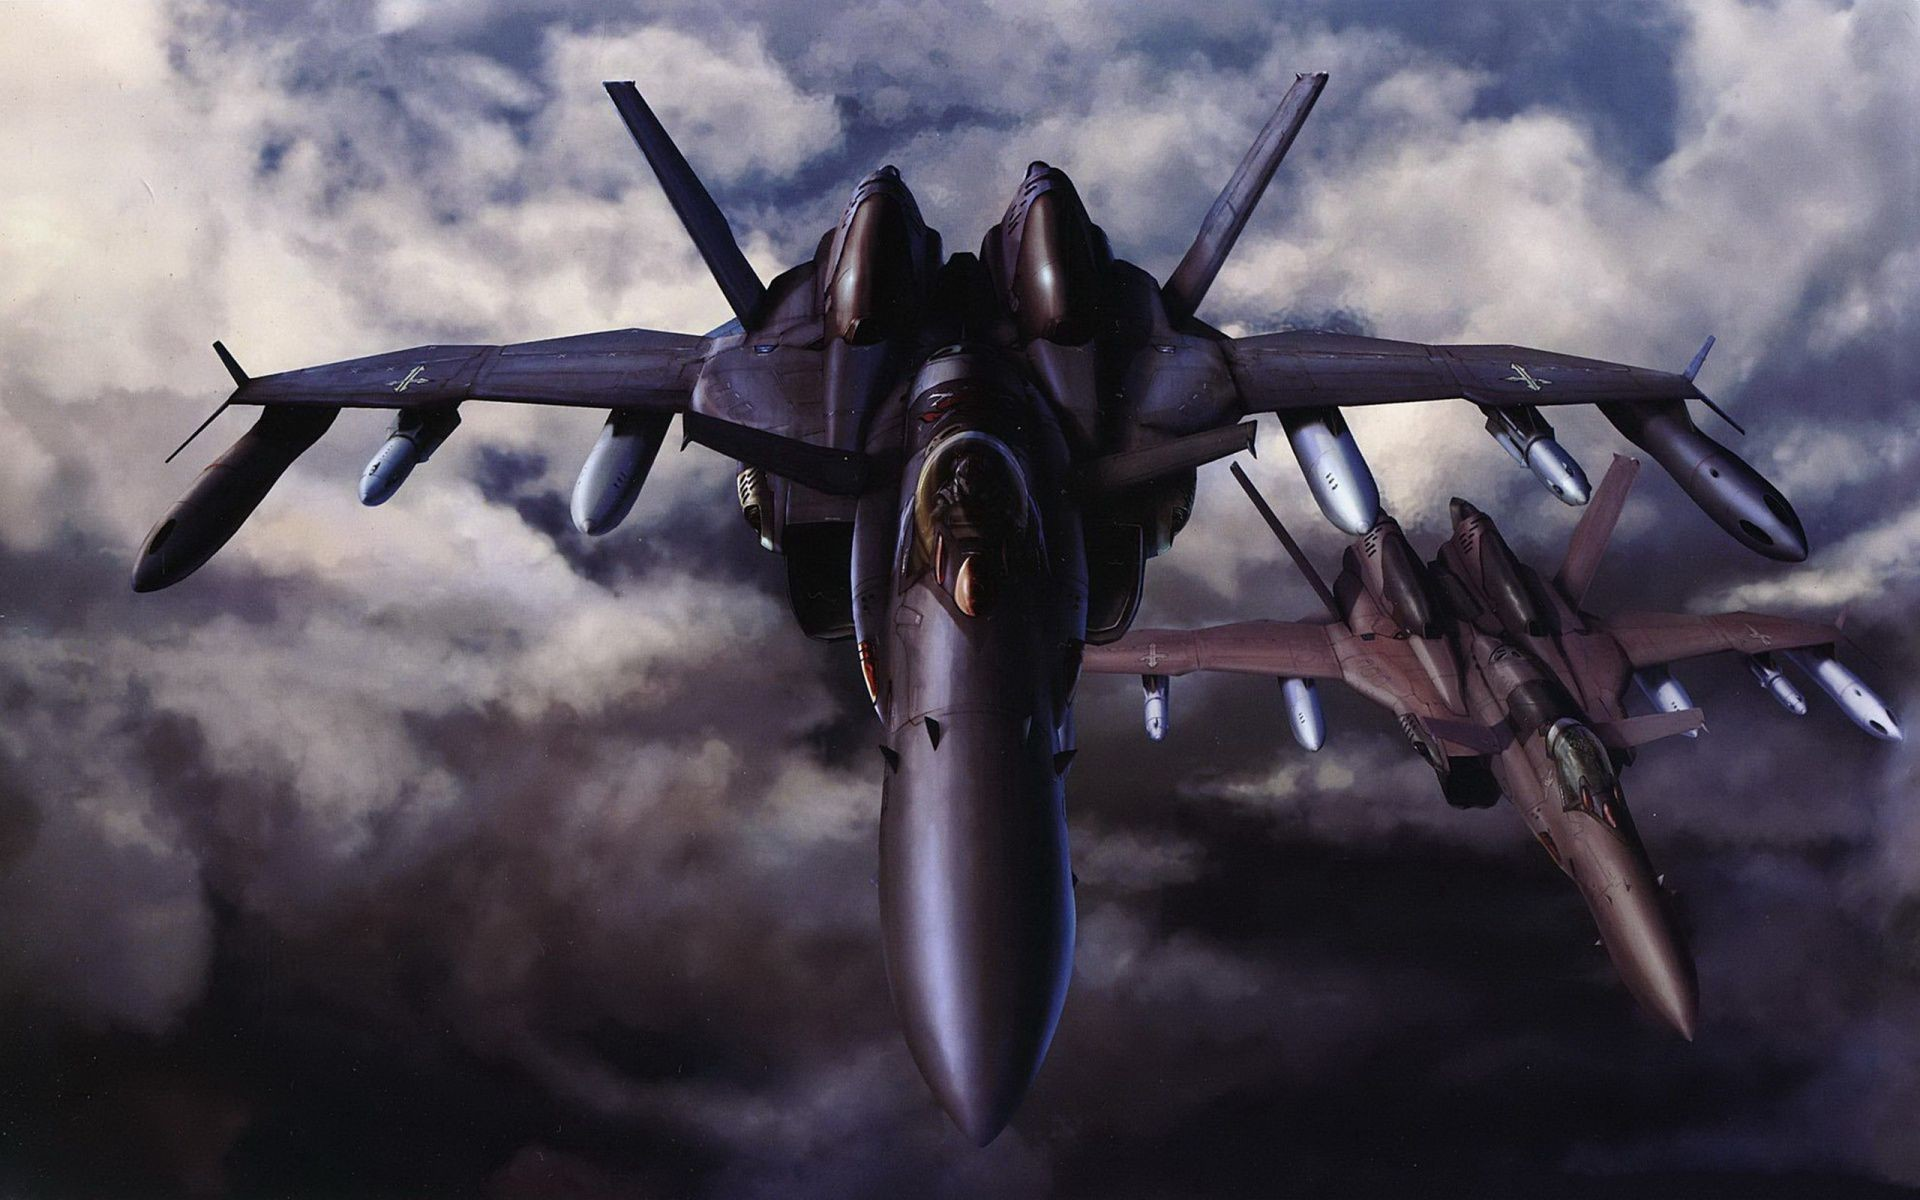 1920x1200 Jet Fighter Military Aircraft HD Wallpapers in HD